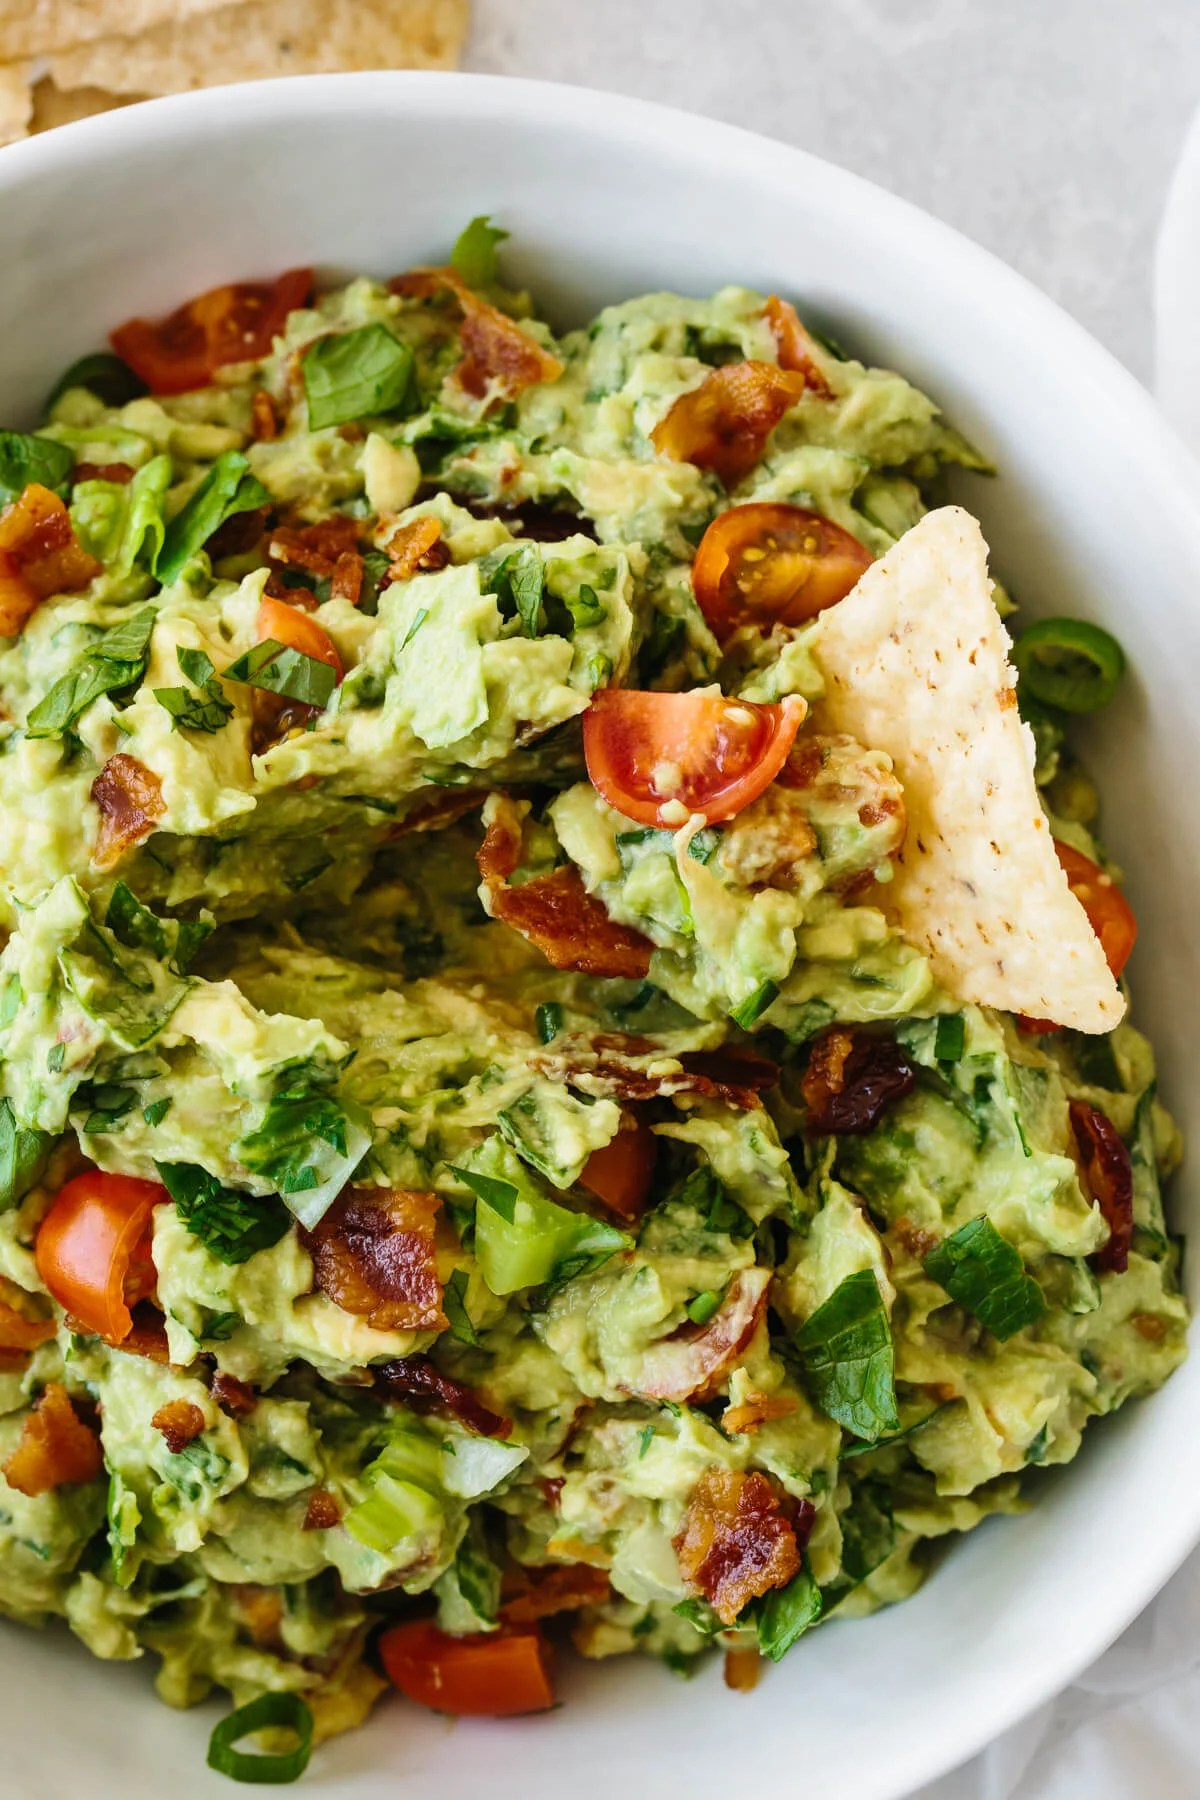 A tortilla chip taking a scoop of BLT guacamole.